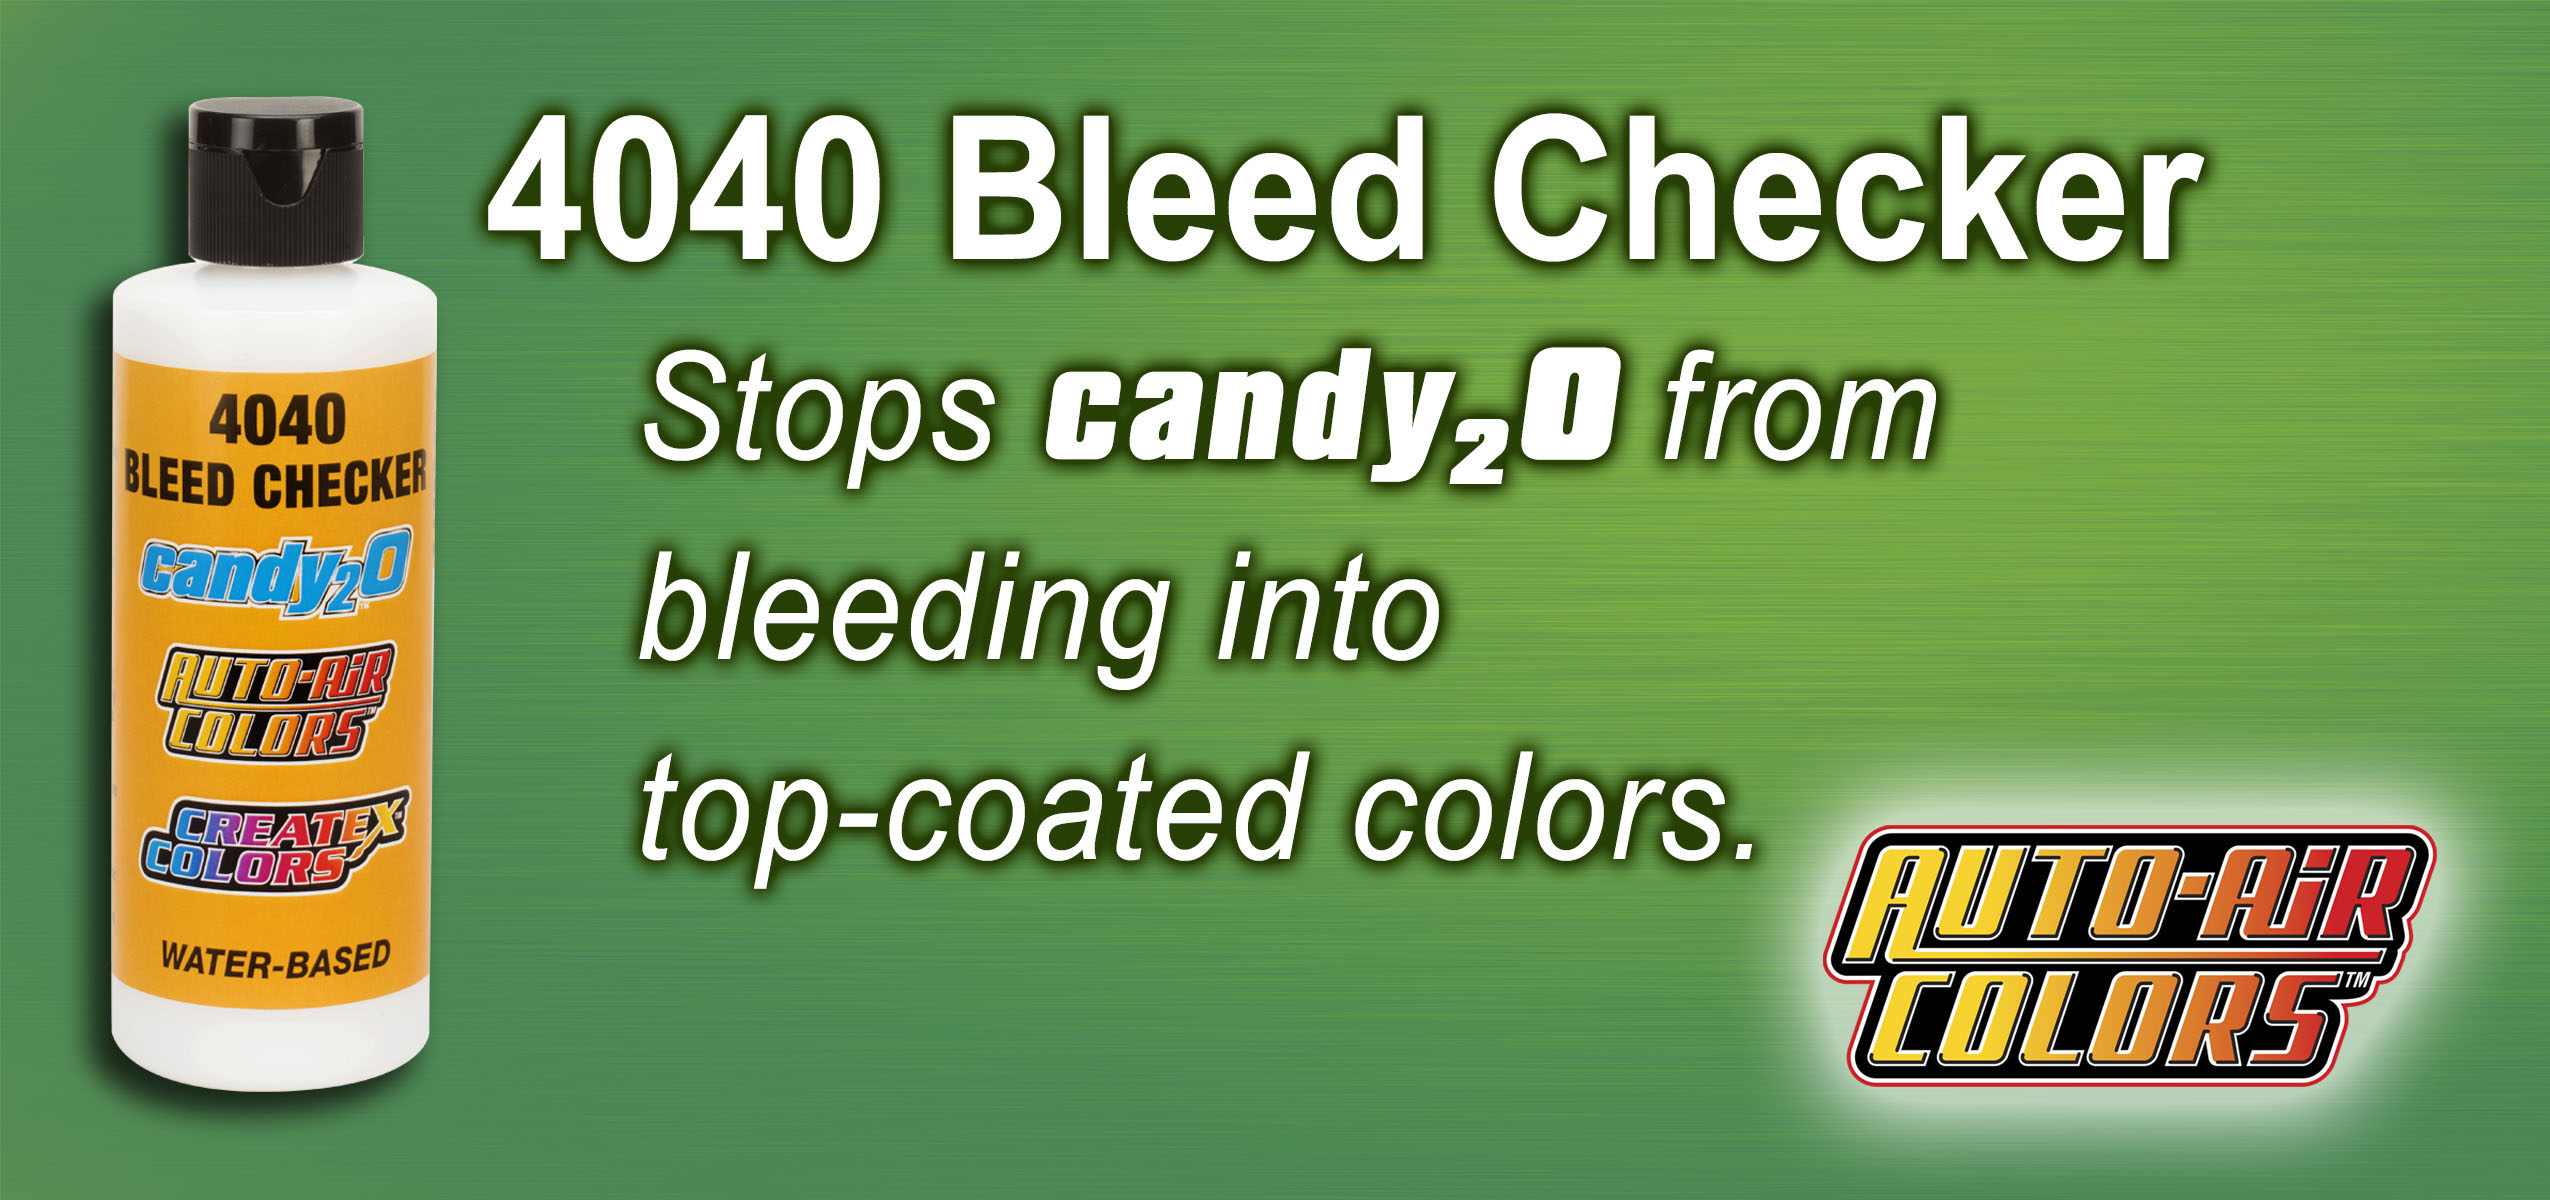 4040 Bleed Checker